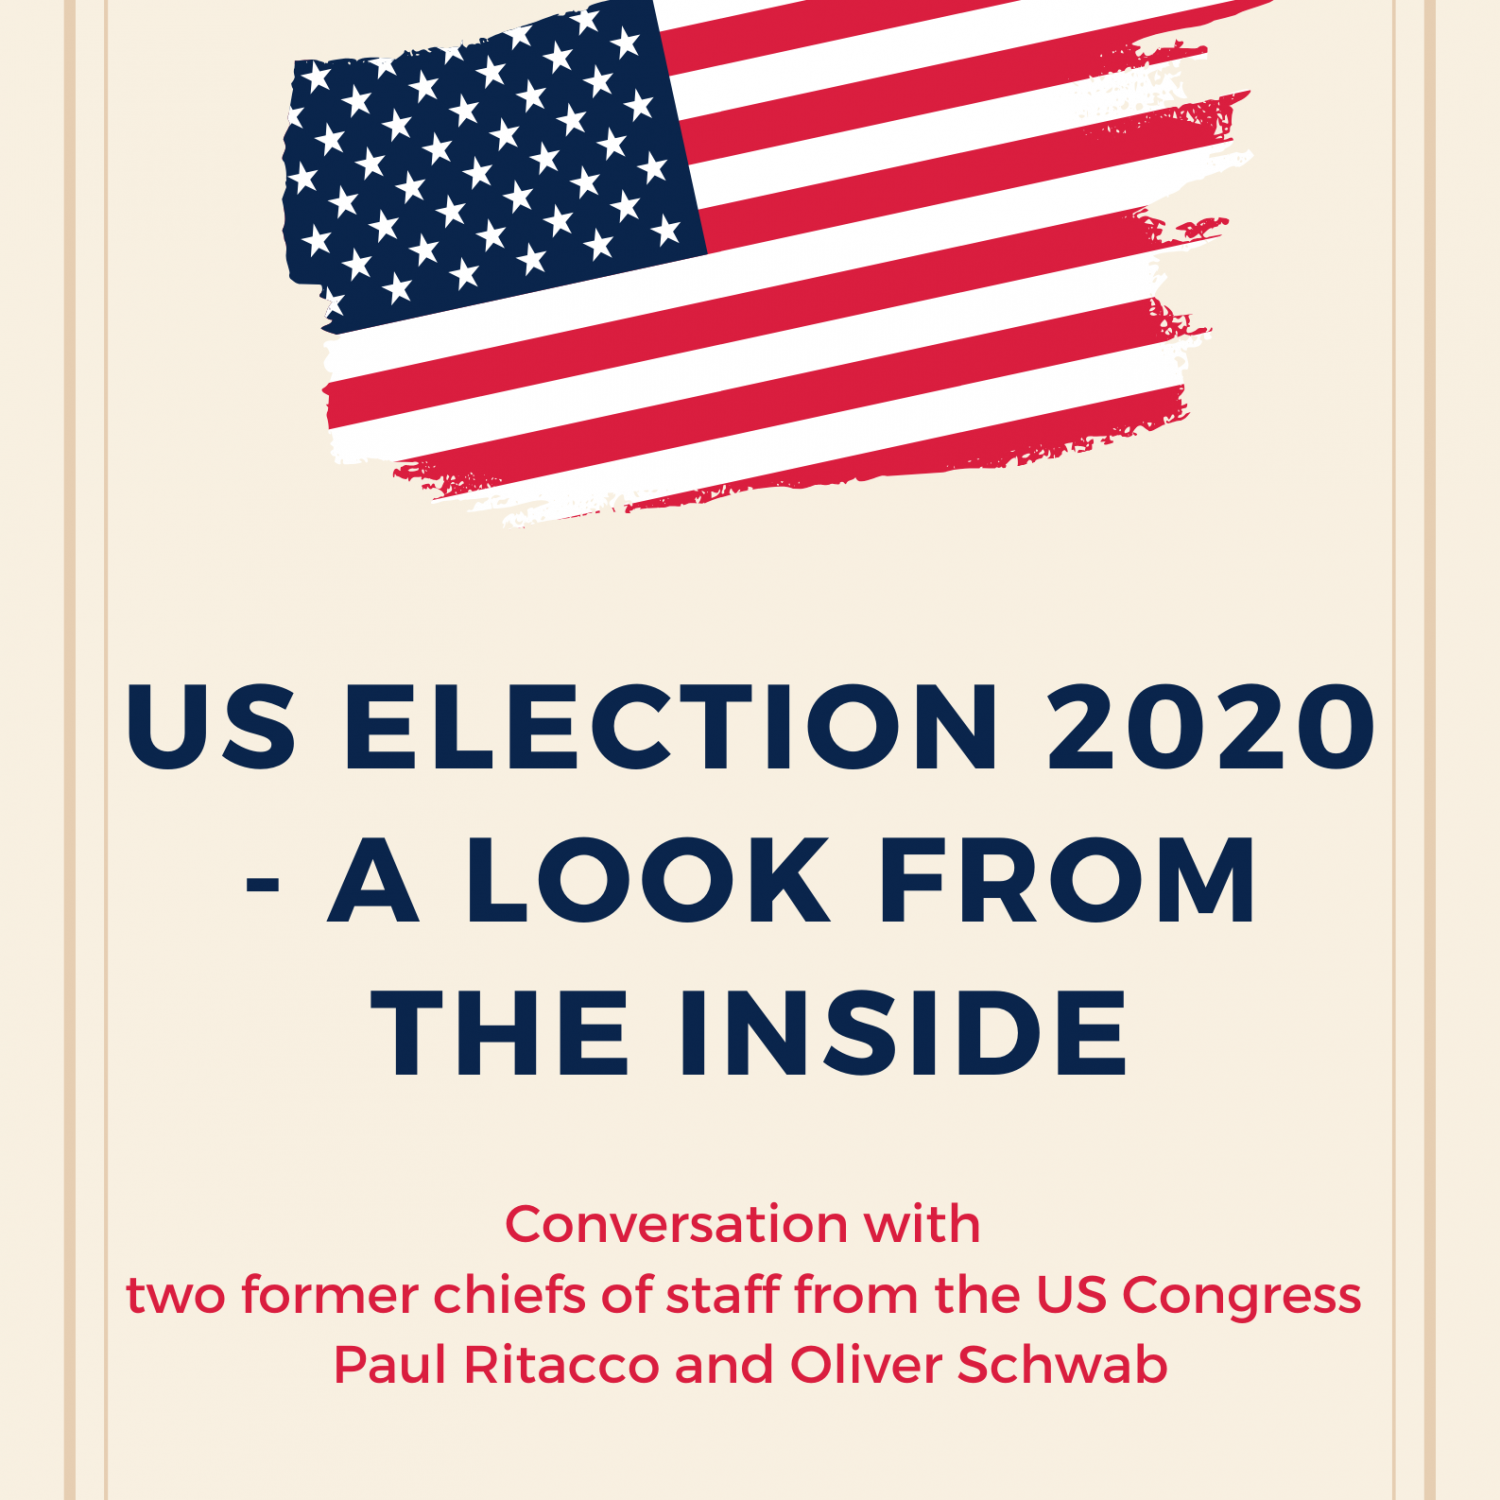 US ELECTION 2020 - a look from the inside - conversation